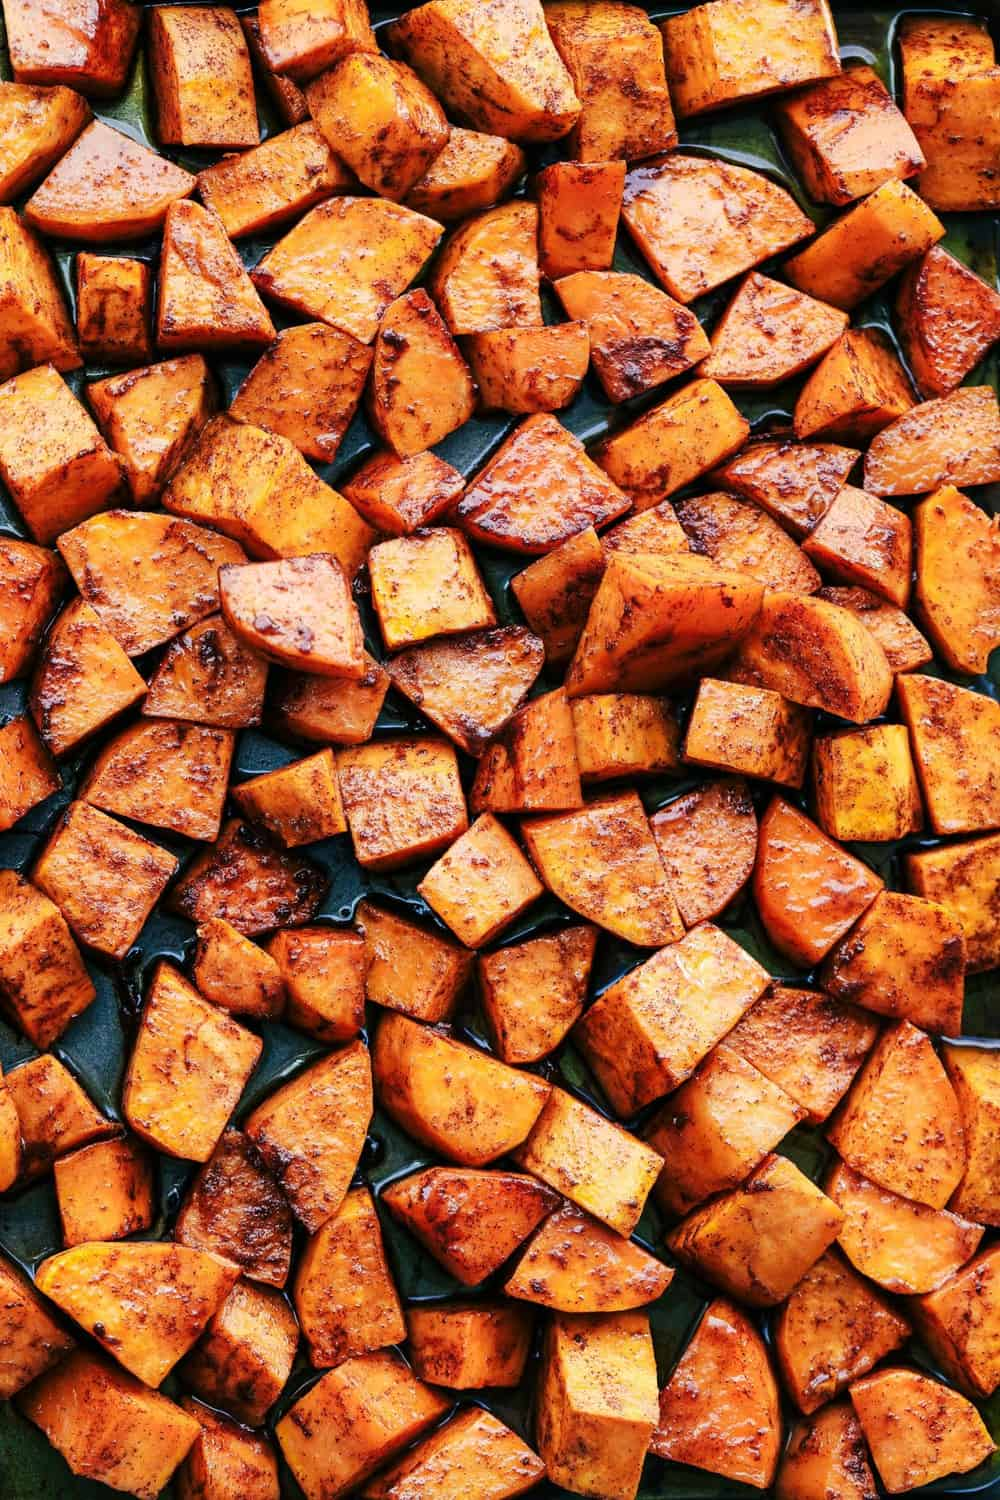 Roasted Honey Cinnamon Butter Sweet Potatoes spread out on a pan.